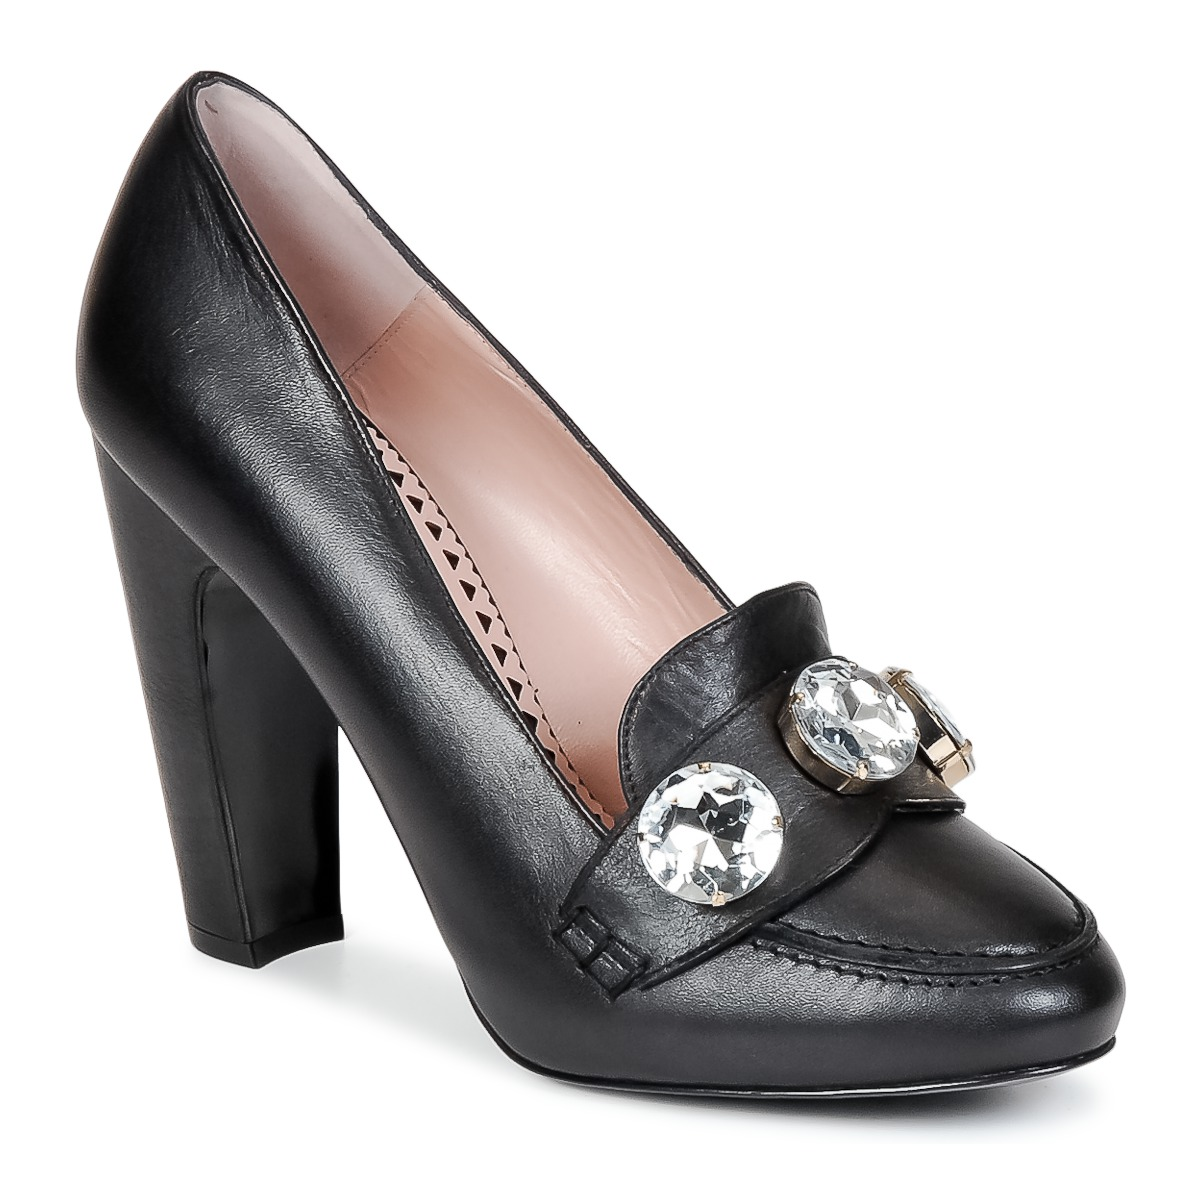 Pumps Moschino Cheap   CHIC  STONES